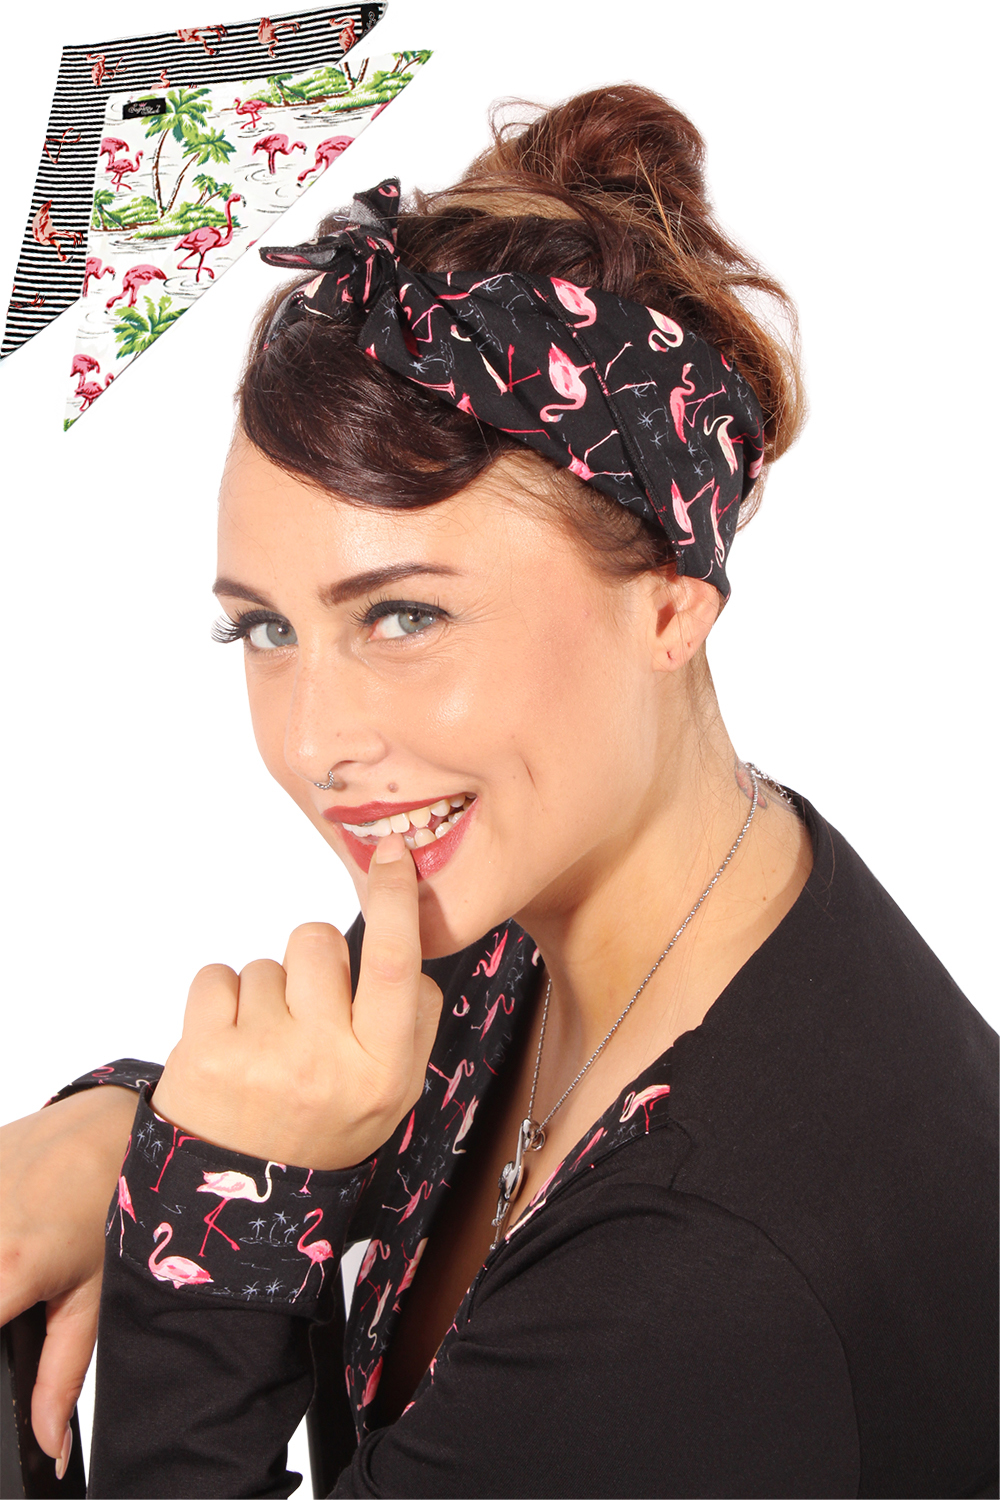 SugarShock 50s retro Flamingo rockabilly pin up Tuch Bandana Haarband